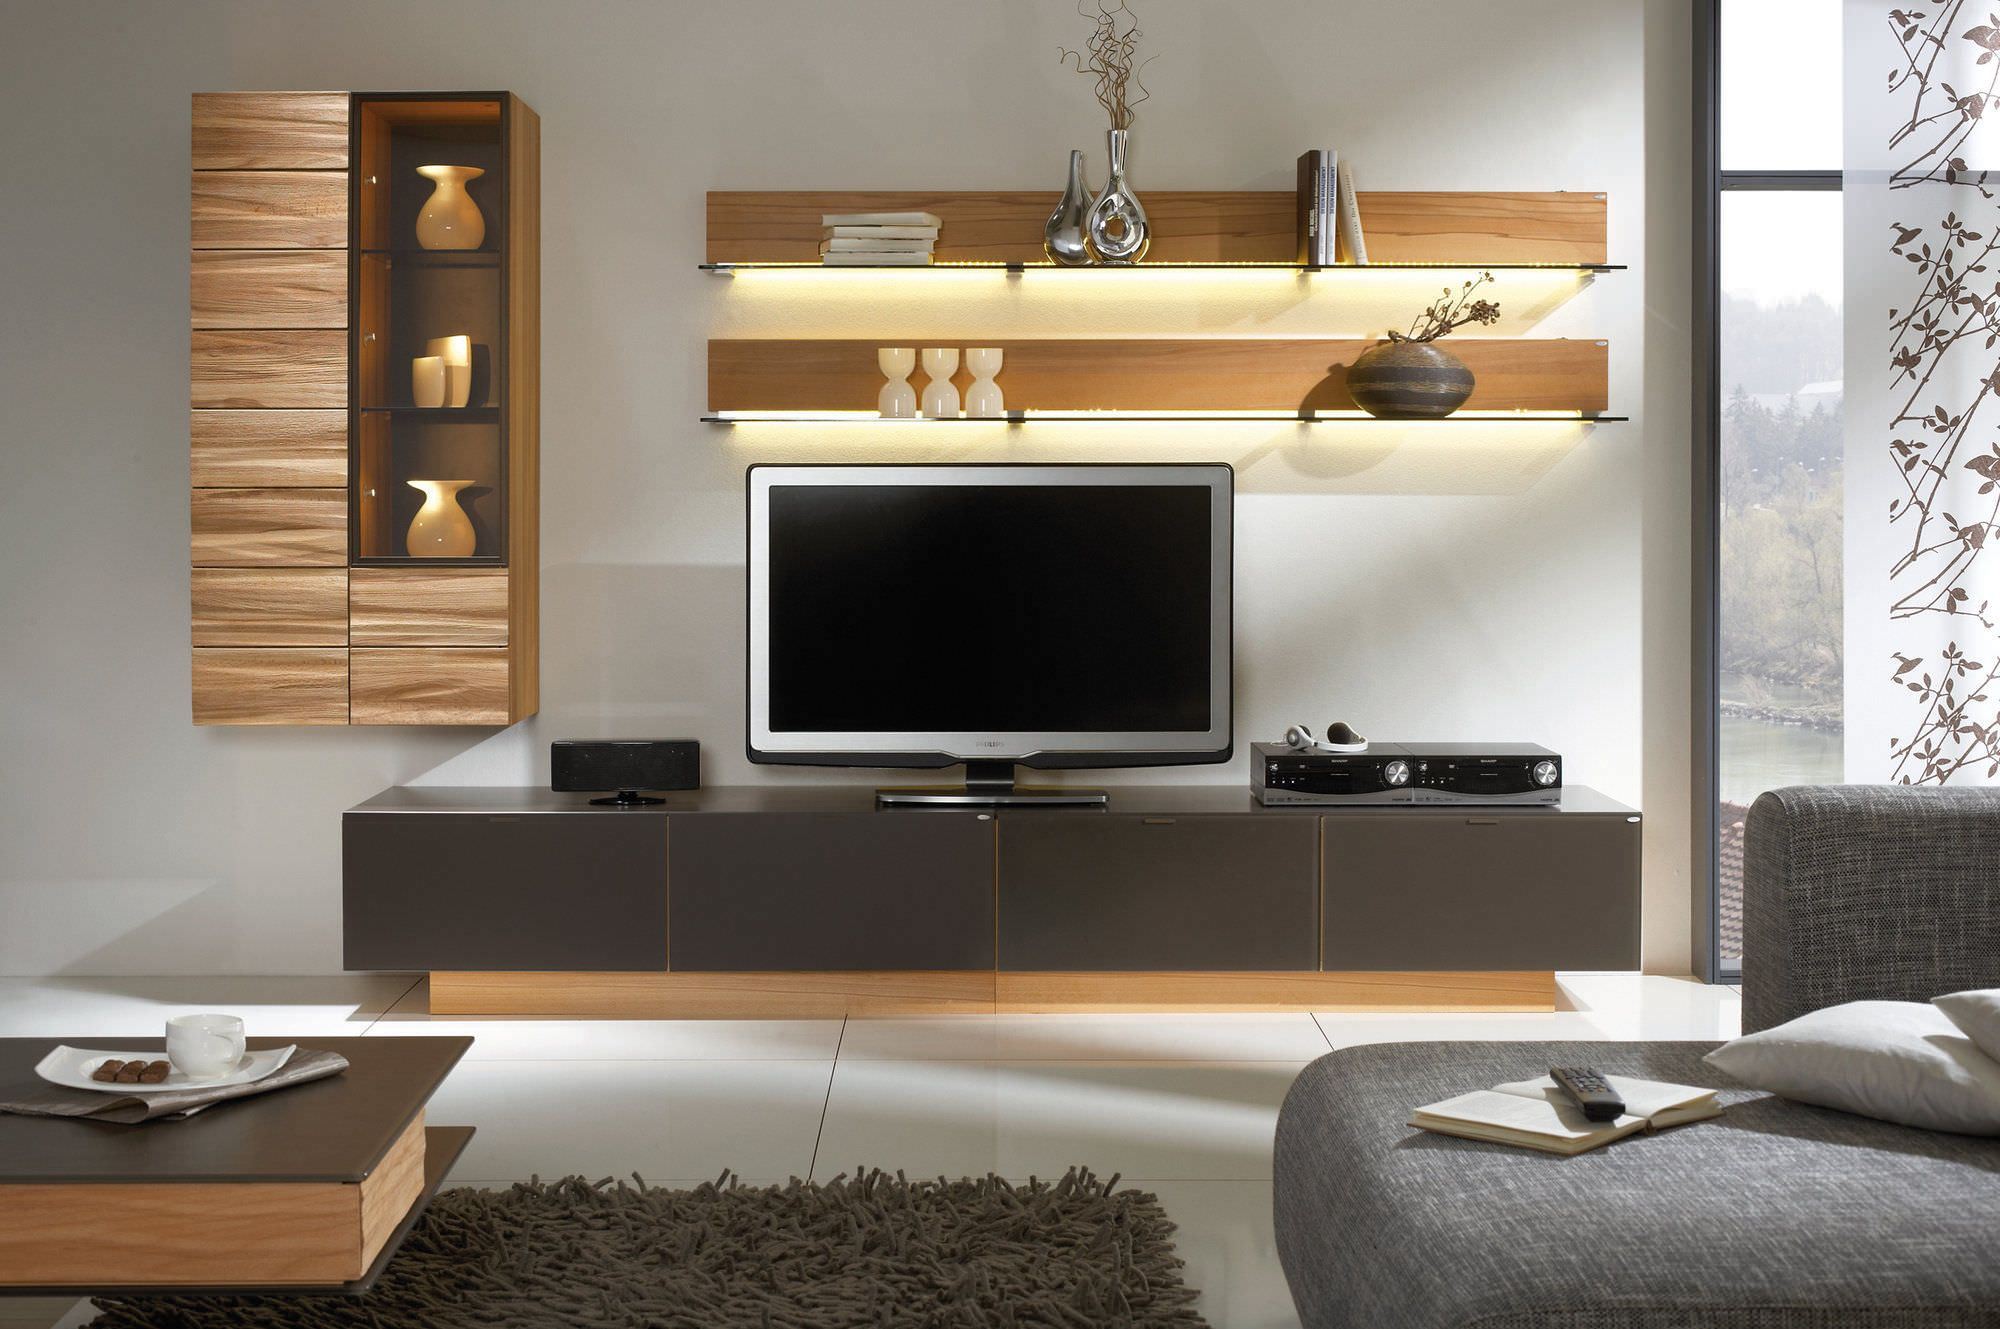 TV Wall Shelf Wood In Different Styles Home Design And Decor Living Room